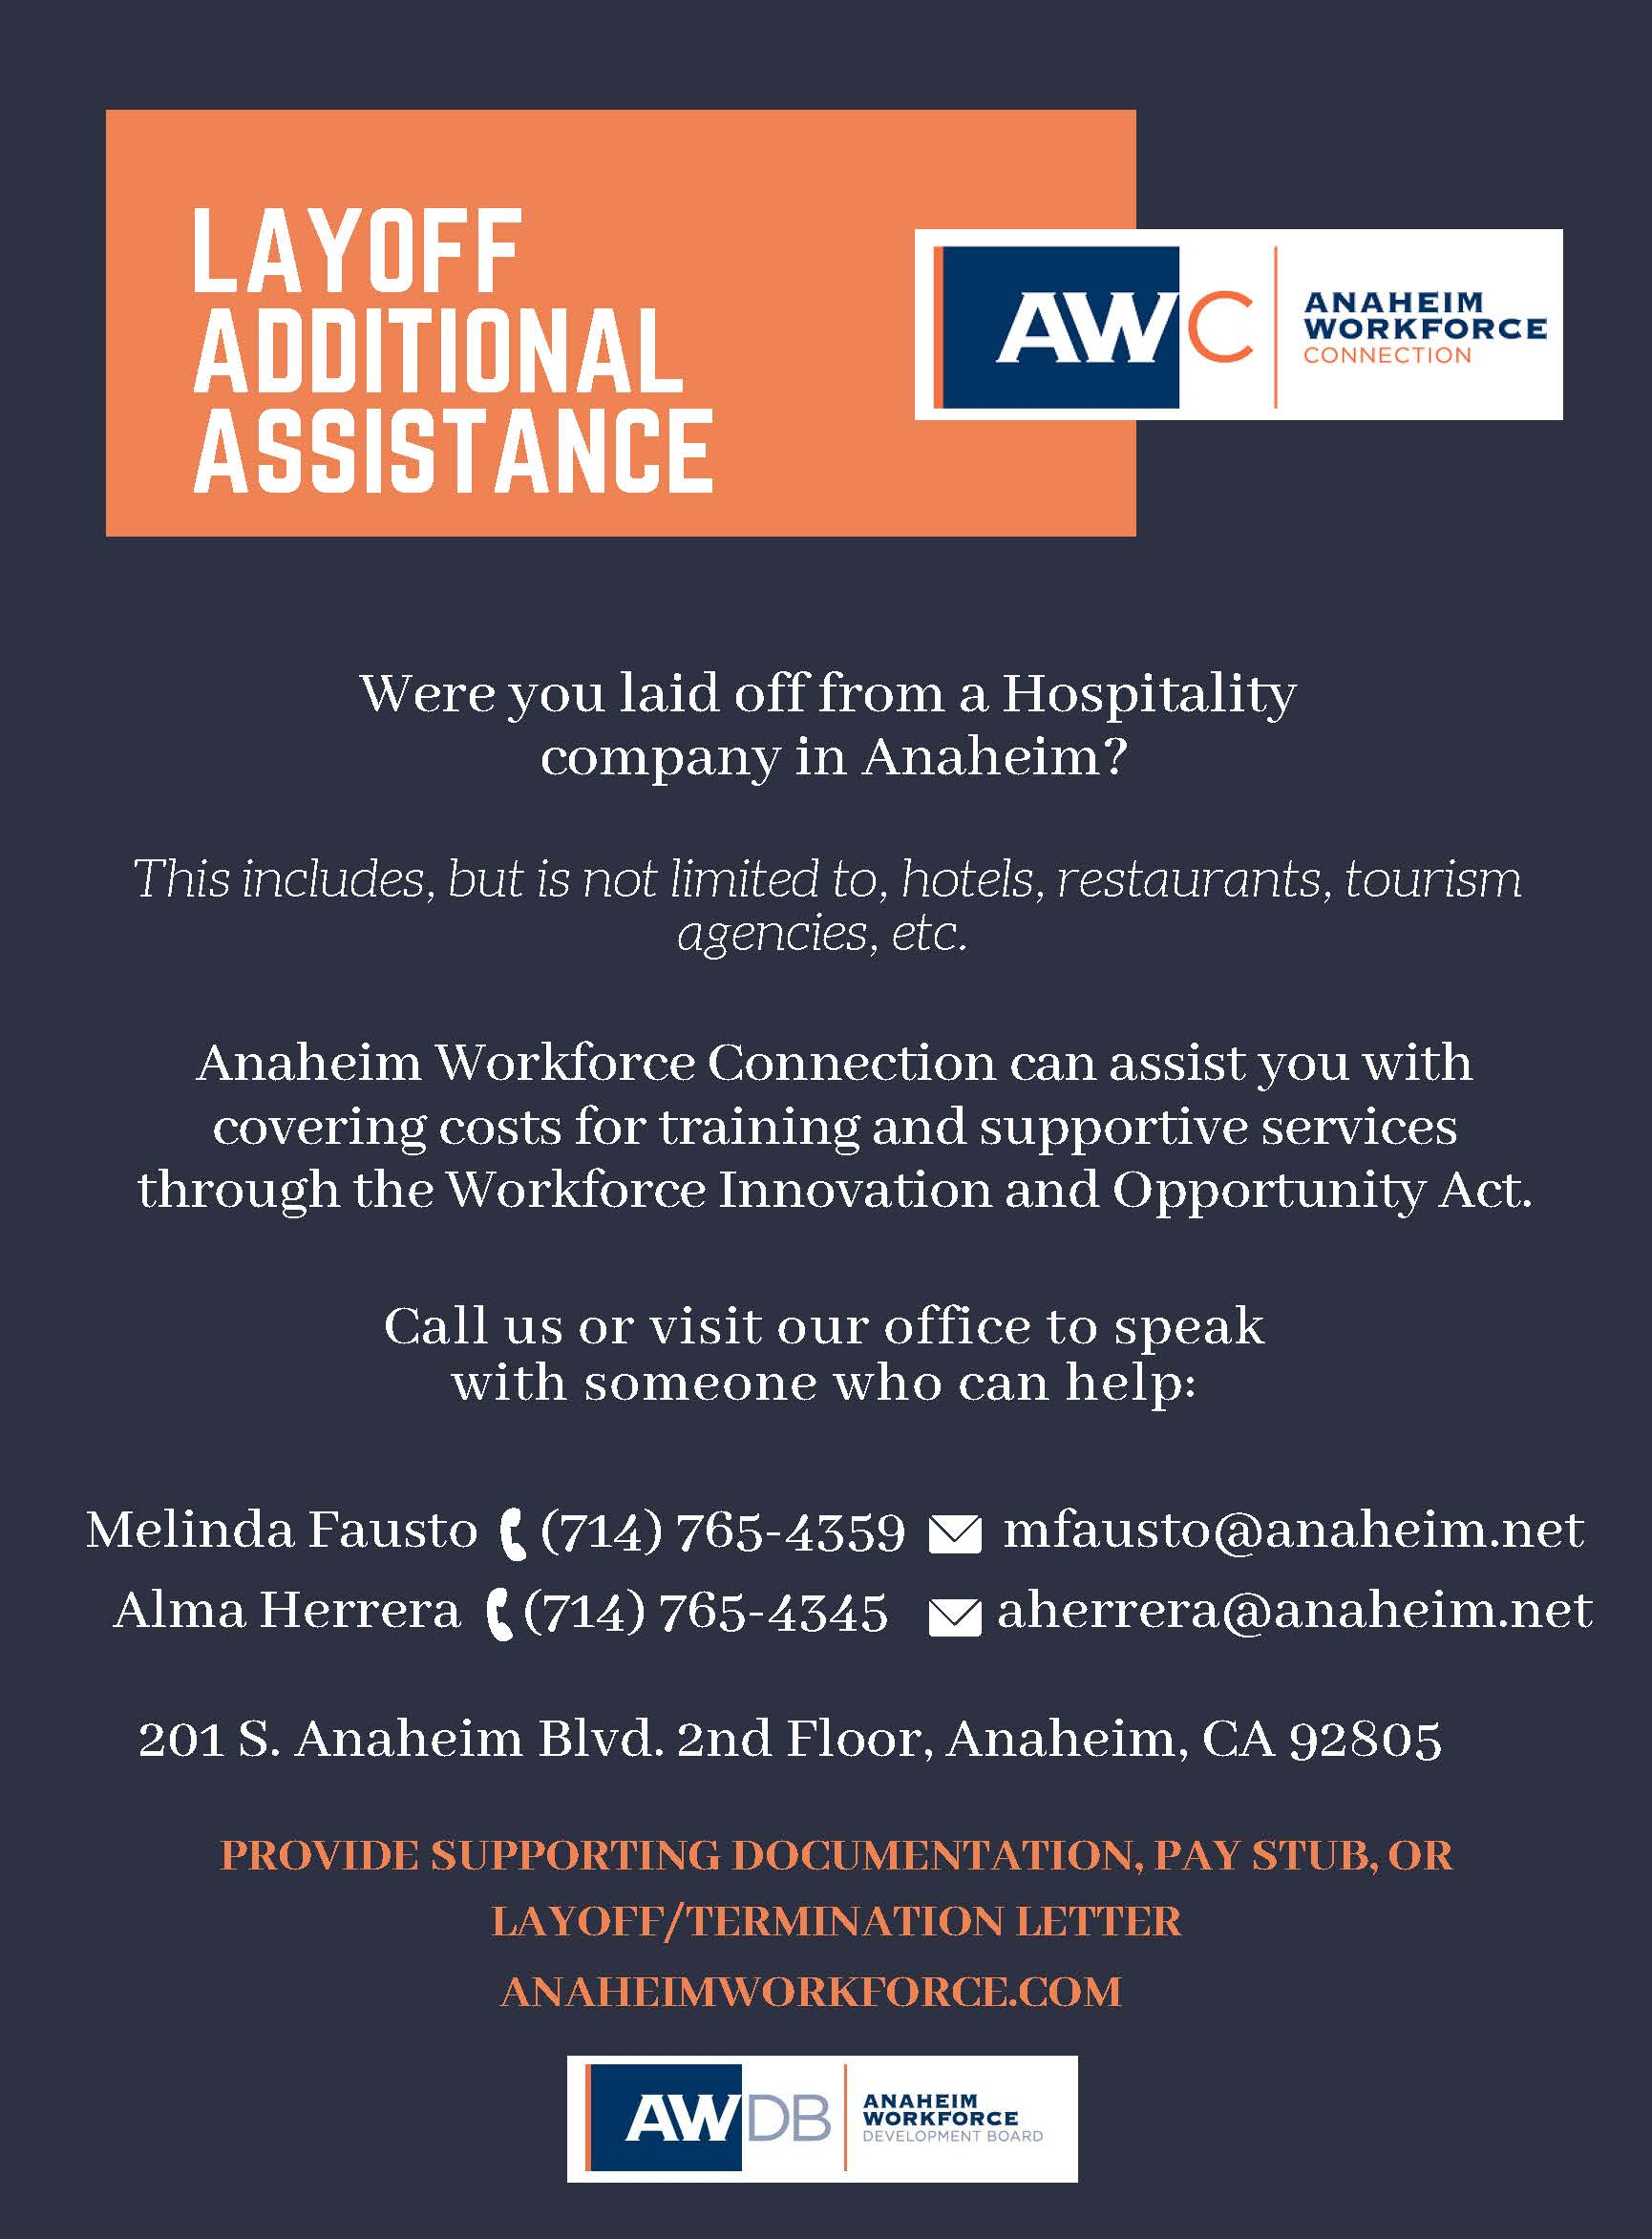 Layoff Additional Assistance Hospitality Flyer